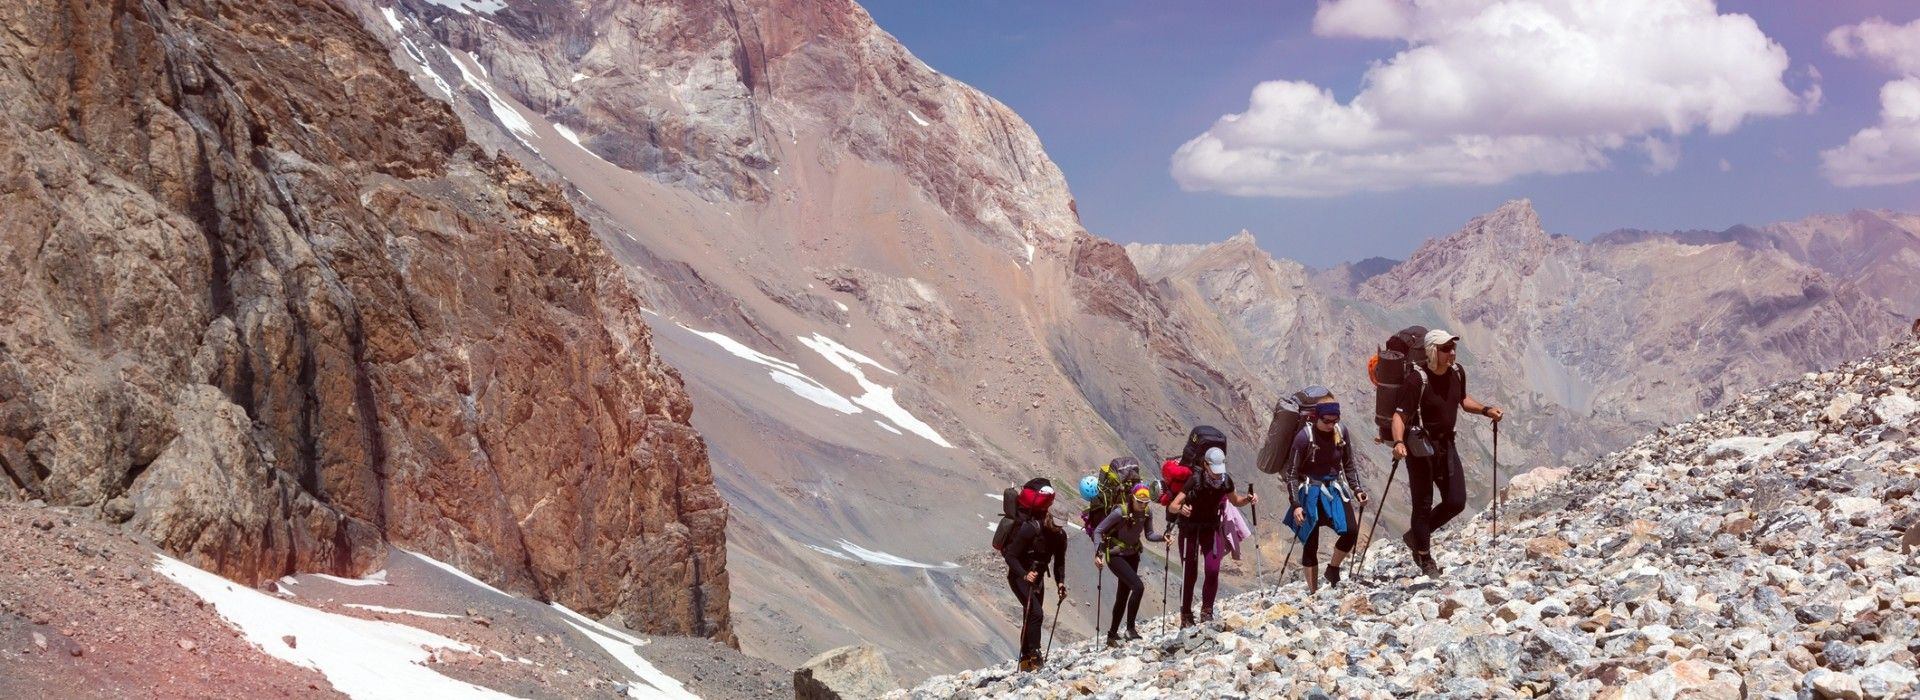 Trekking tours in the mountains